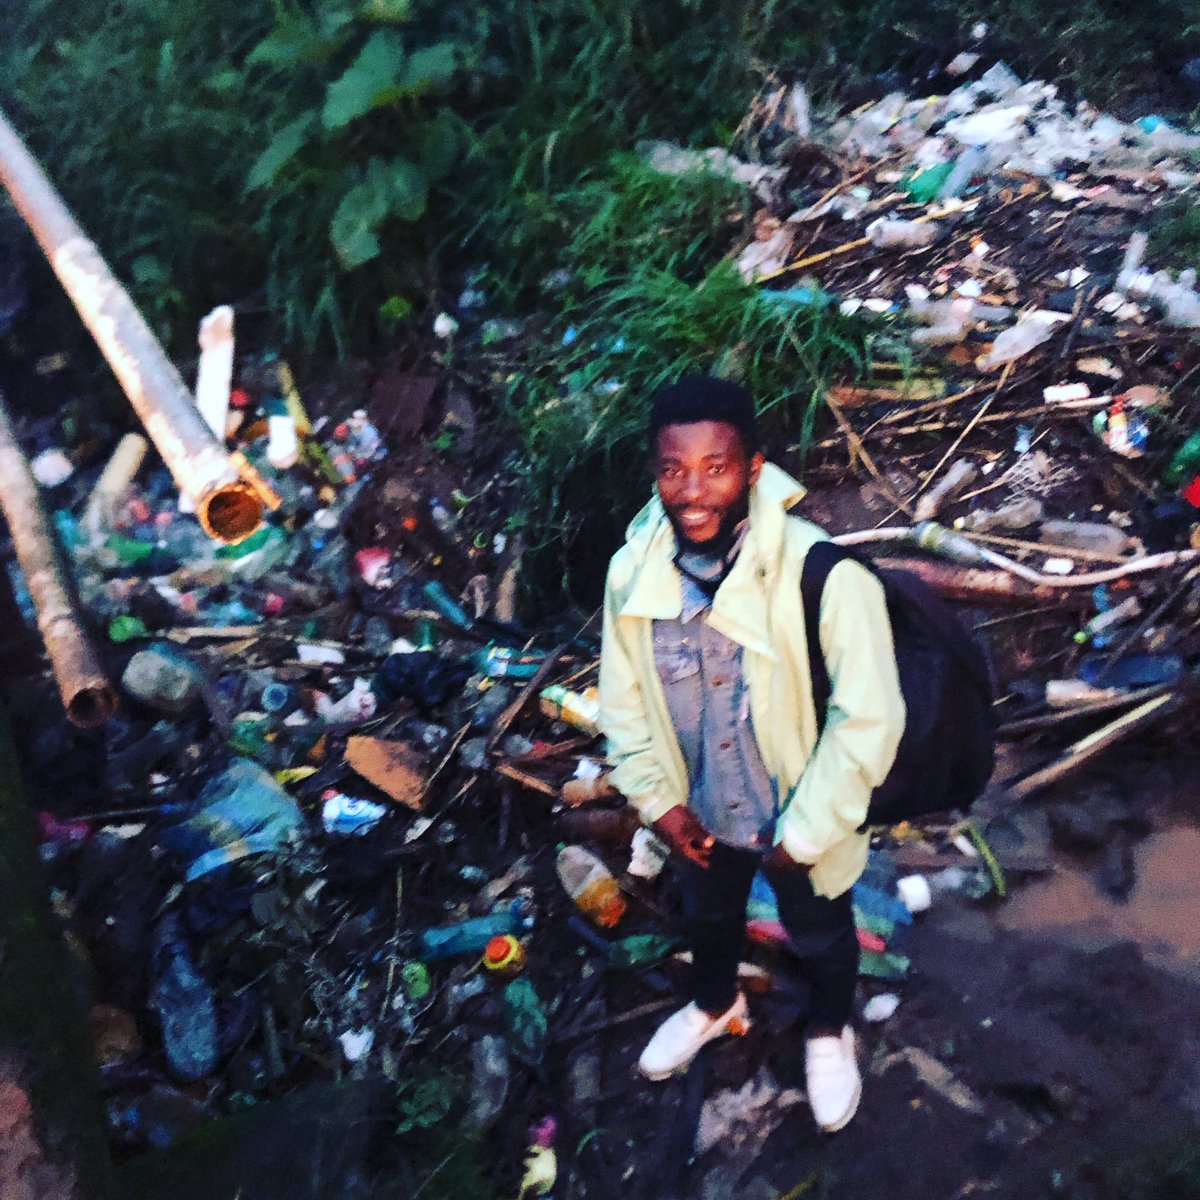 Humanity have disappointed nature badly but it's time to fix my #timeforNature #recyclikecolins @colins_kaiven #sebca https://t.co/JVV33Rlnk7